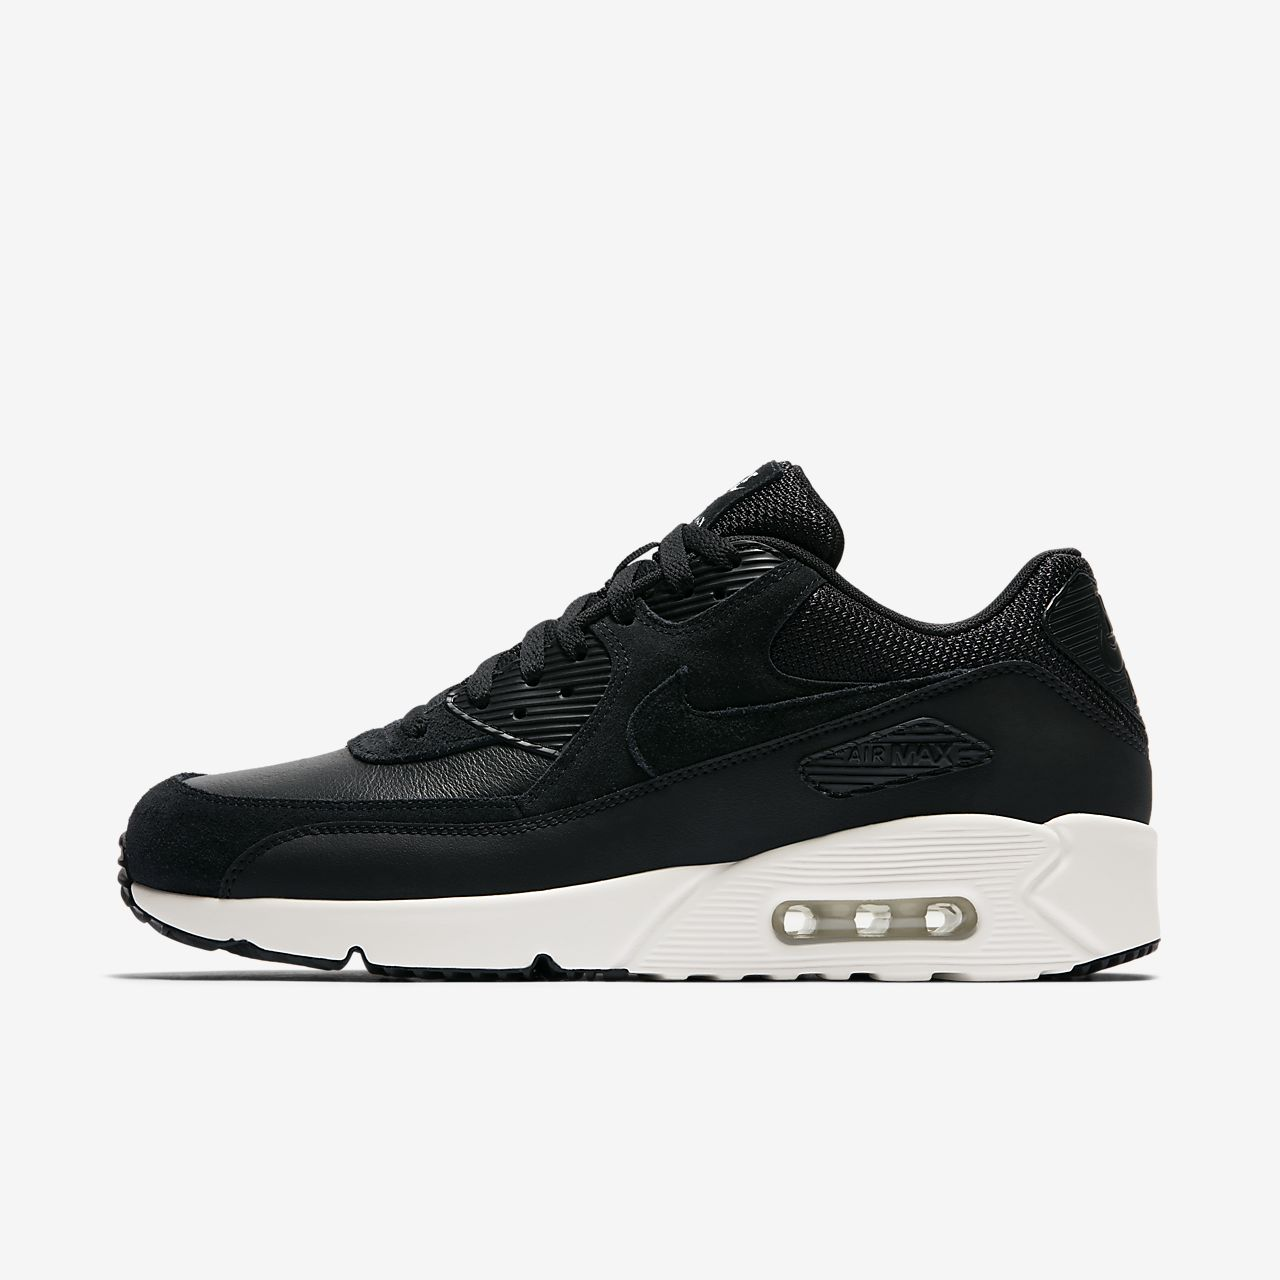 nike men's air max 1 ultra essential black white swoosh nz